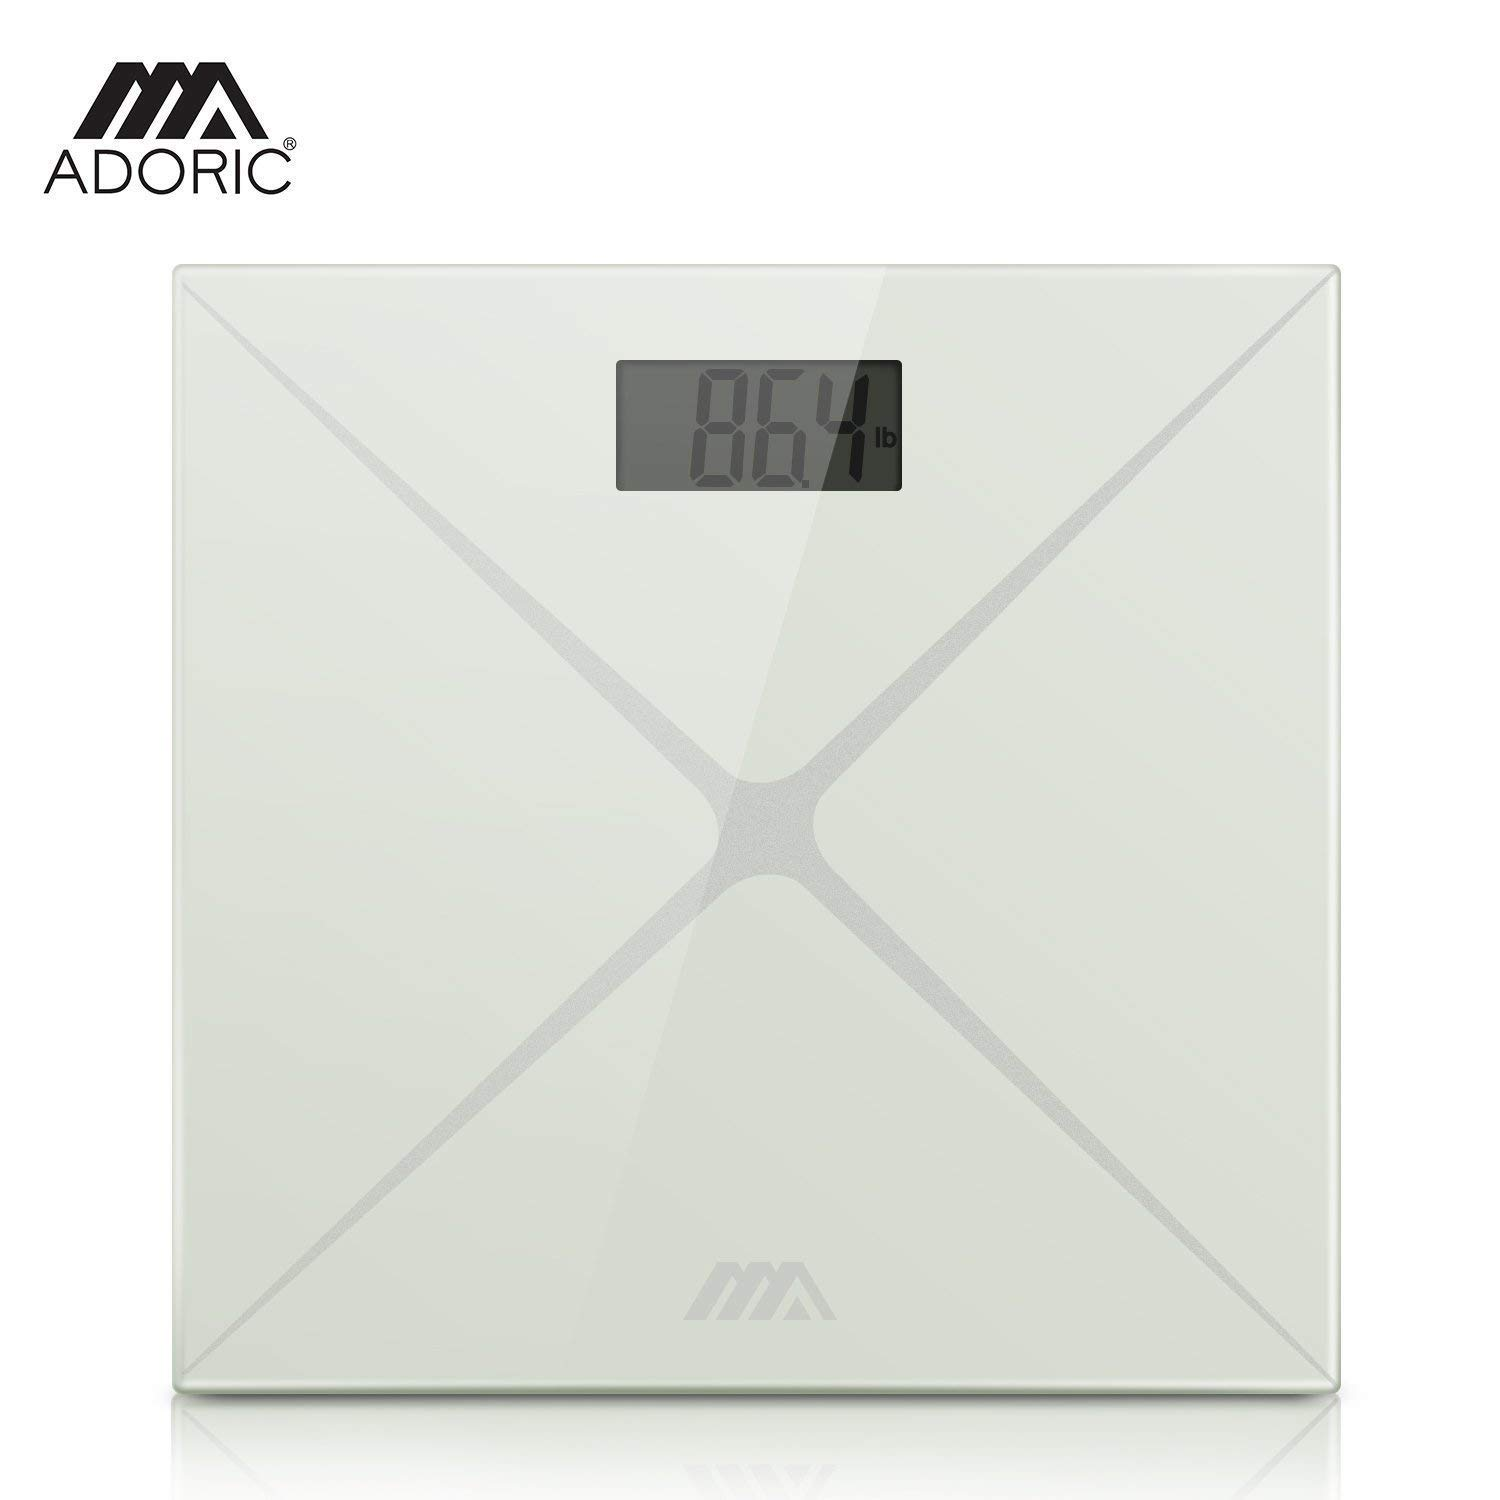 Bathroom Scales, Adoric Digital Body Weight Scales High Precision with Step-On Technology, Slim Design 6MM Tempered Glass, 28st/400lb/180kg Capacity Silver